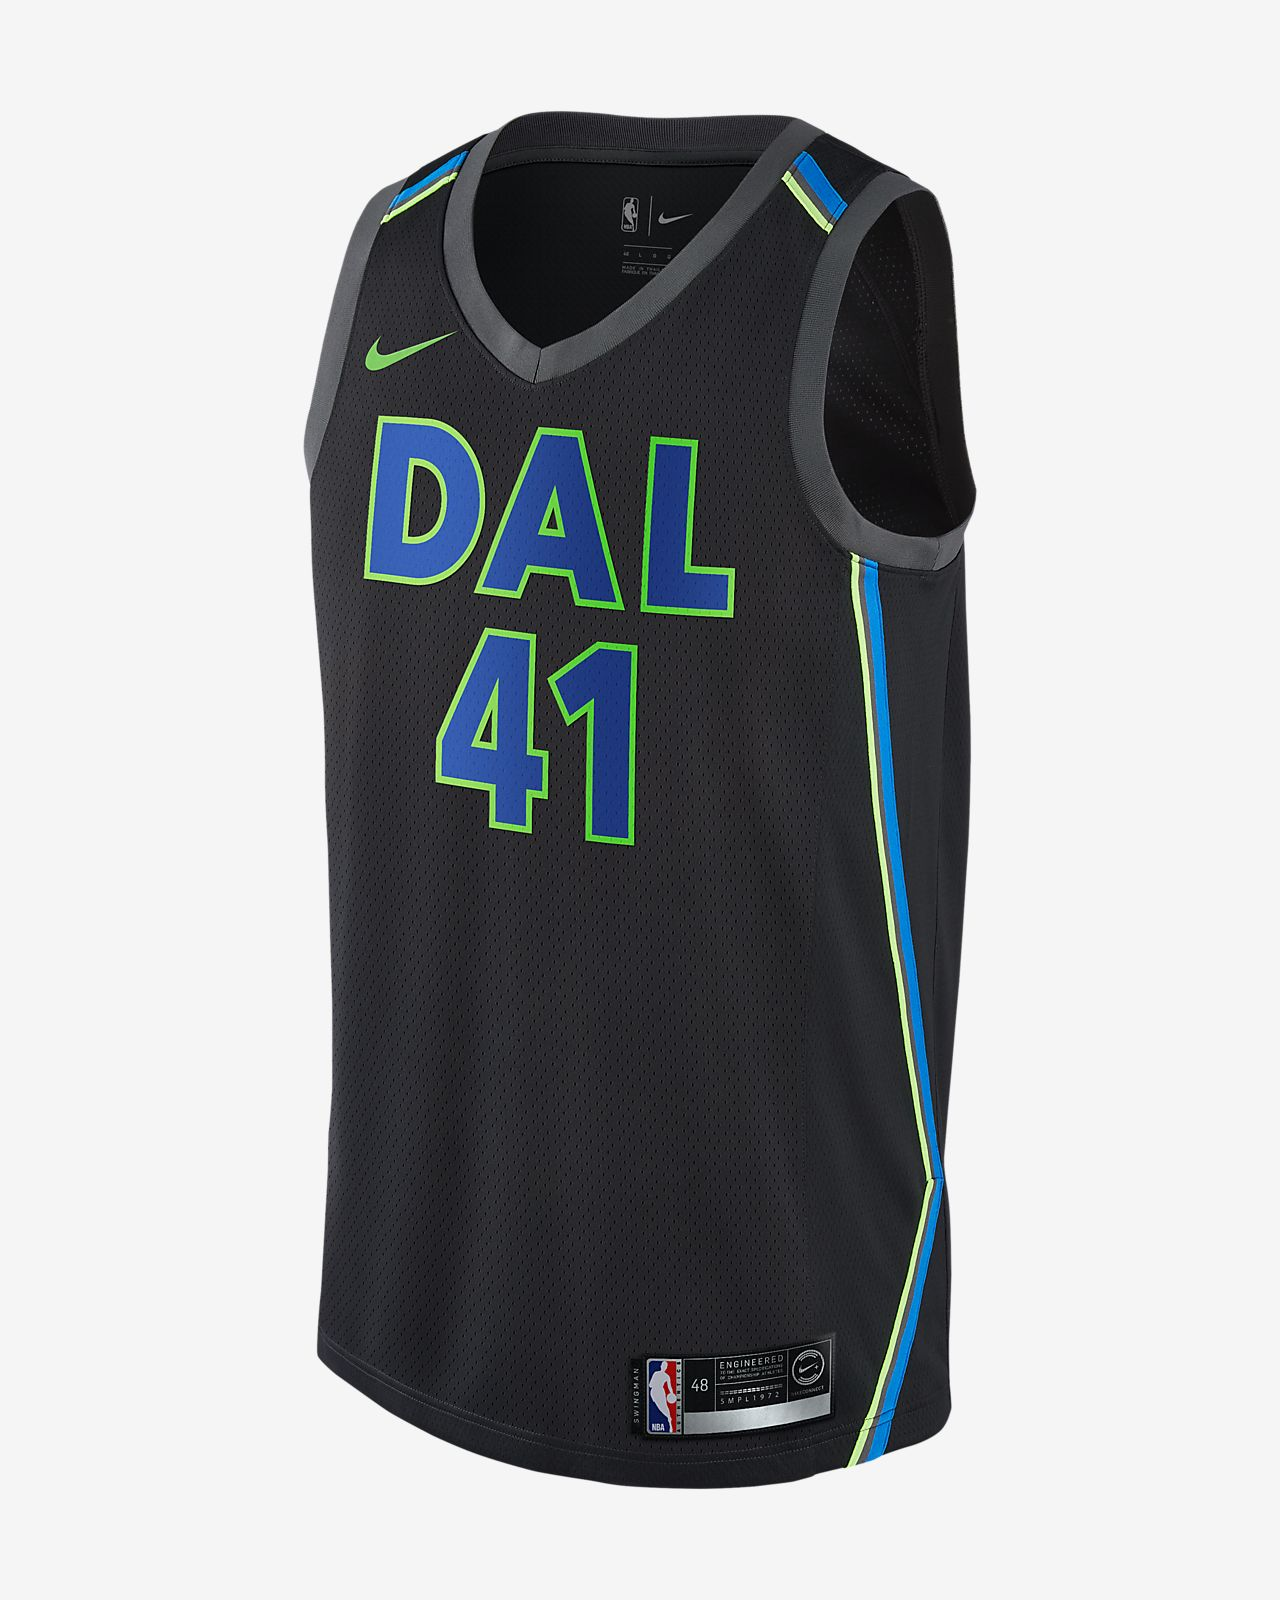 wholesale dealer 64745 95c42 Maglia Nike NBA Connected Dirk Nowitzki City Edition Swingman Jersey  (Dallas Mavericks) - Uomo